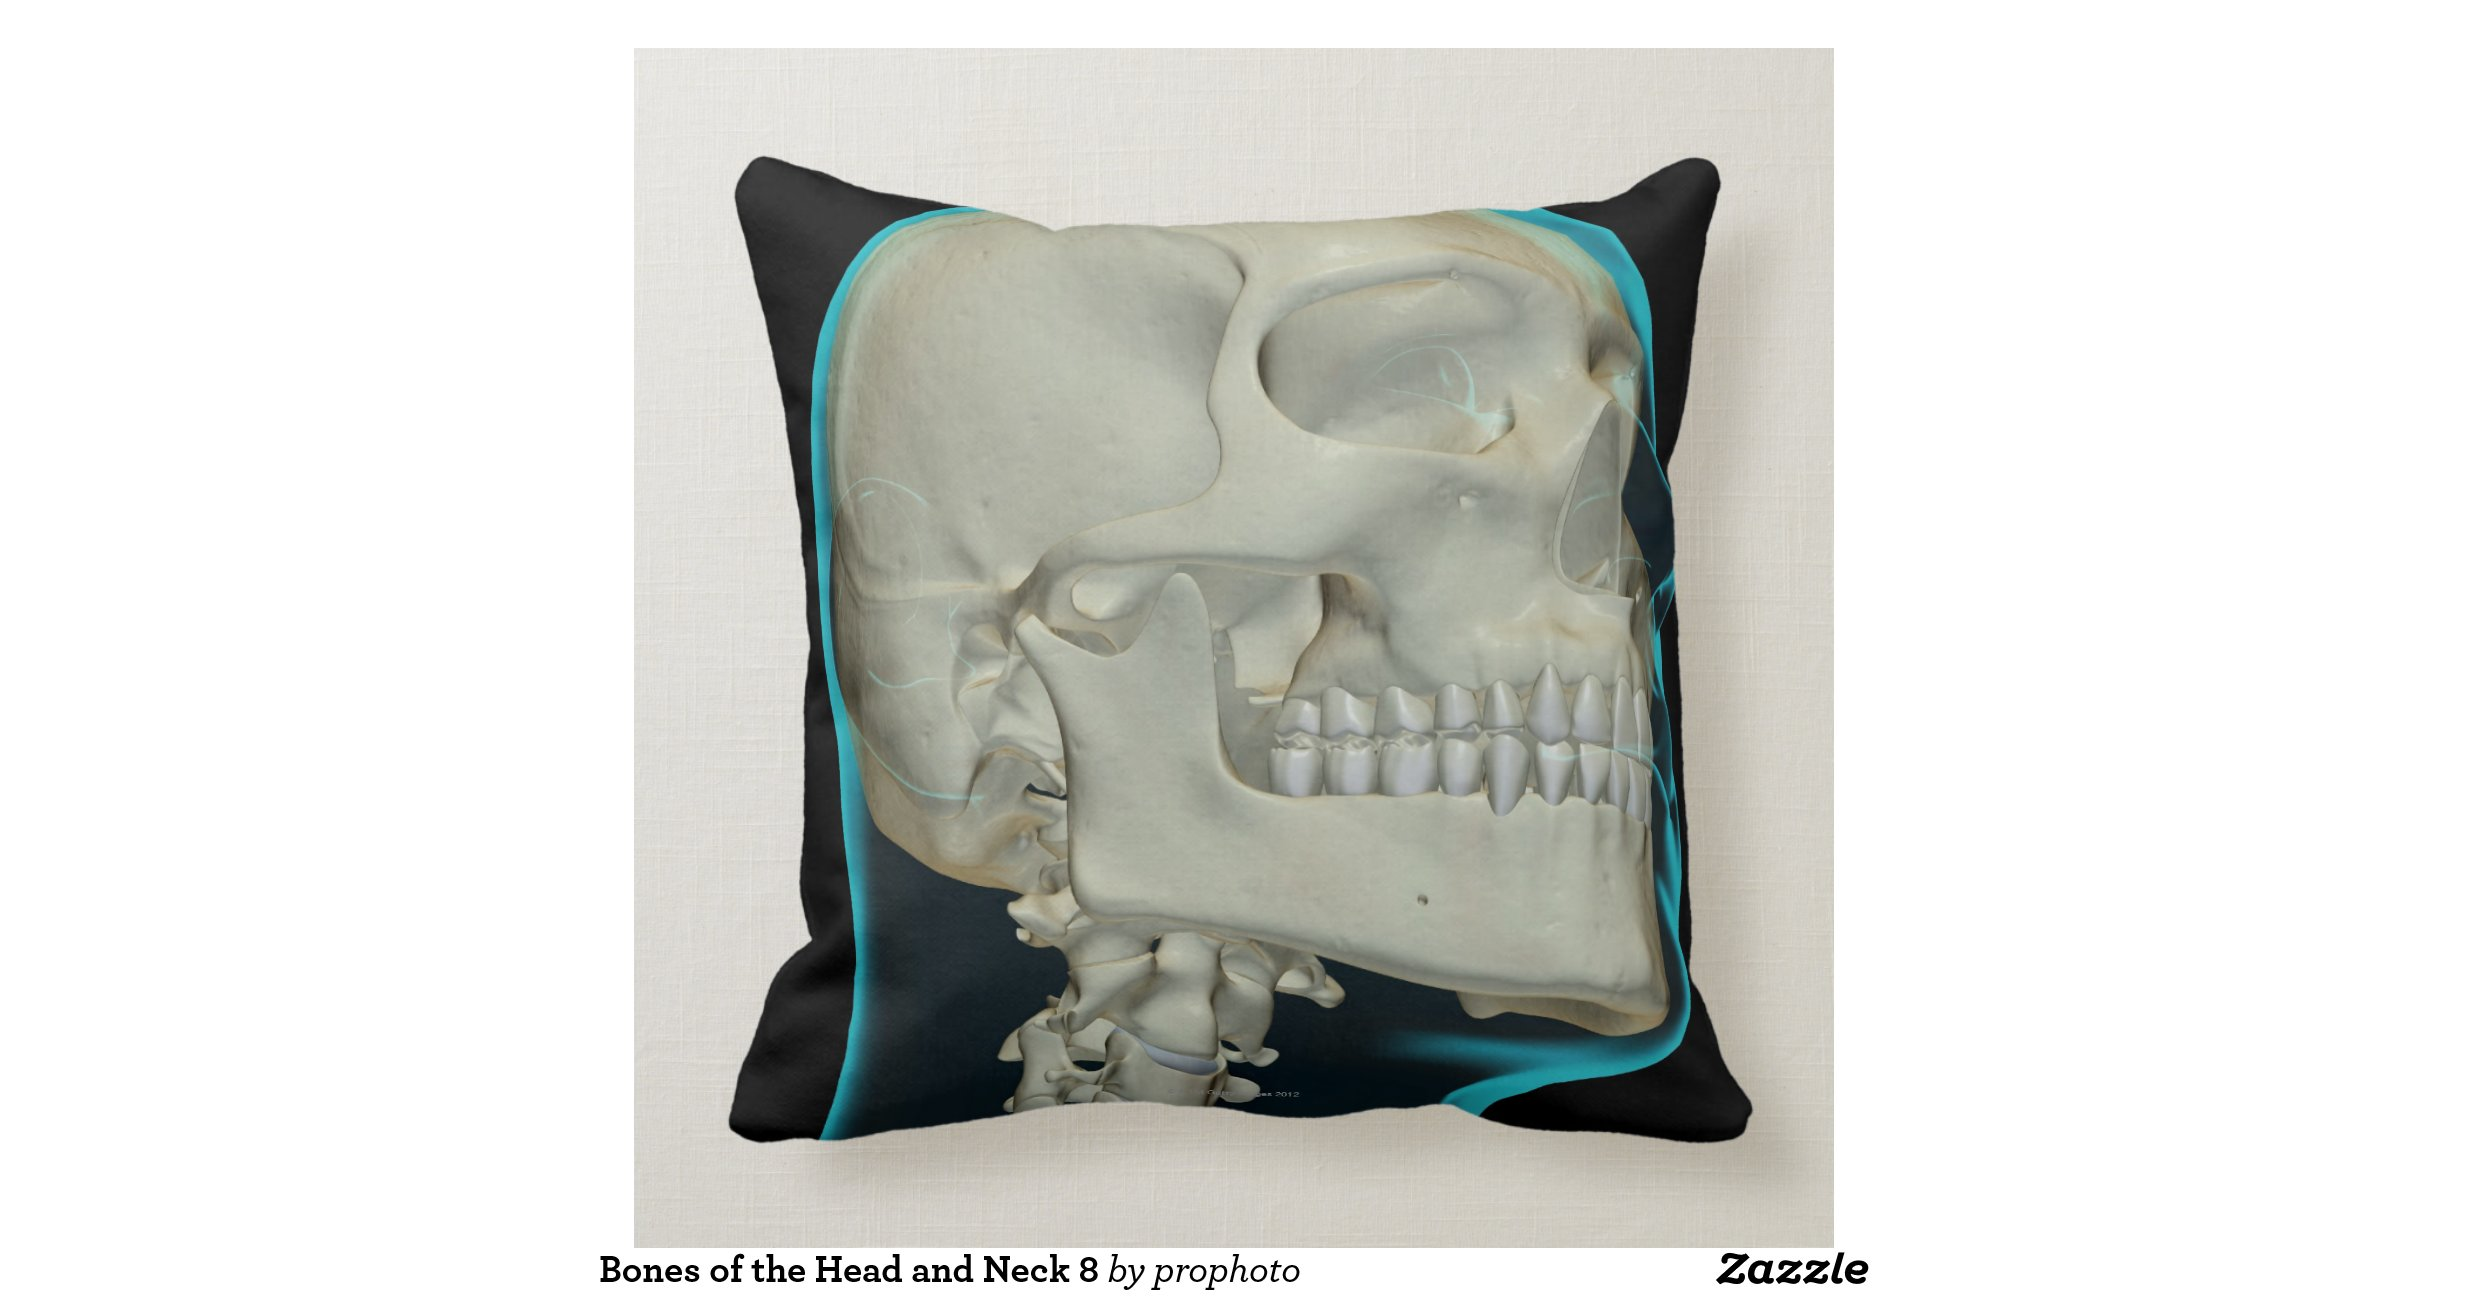 Throw Pillows Under 5 Dollars : Bones of the Head and Neck 8 Throw Pillows Zazzle